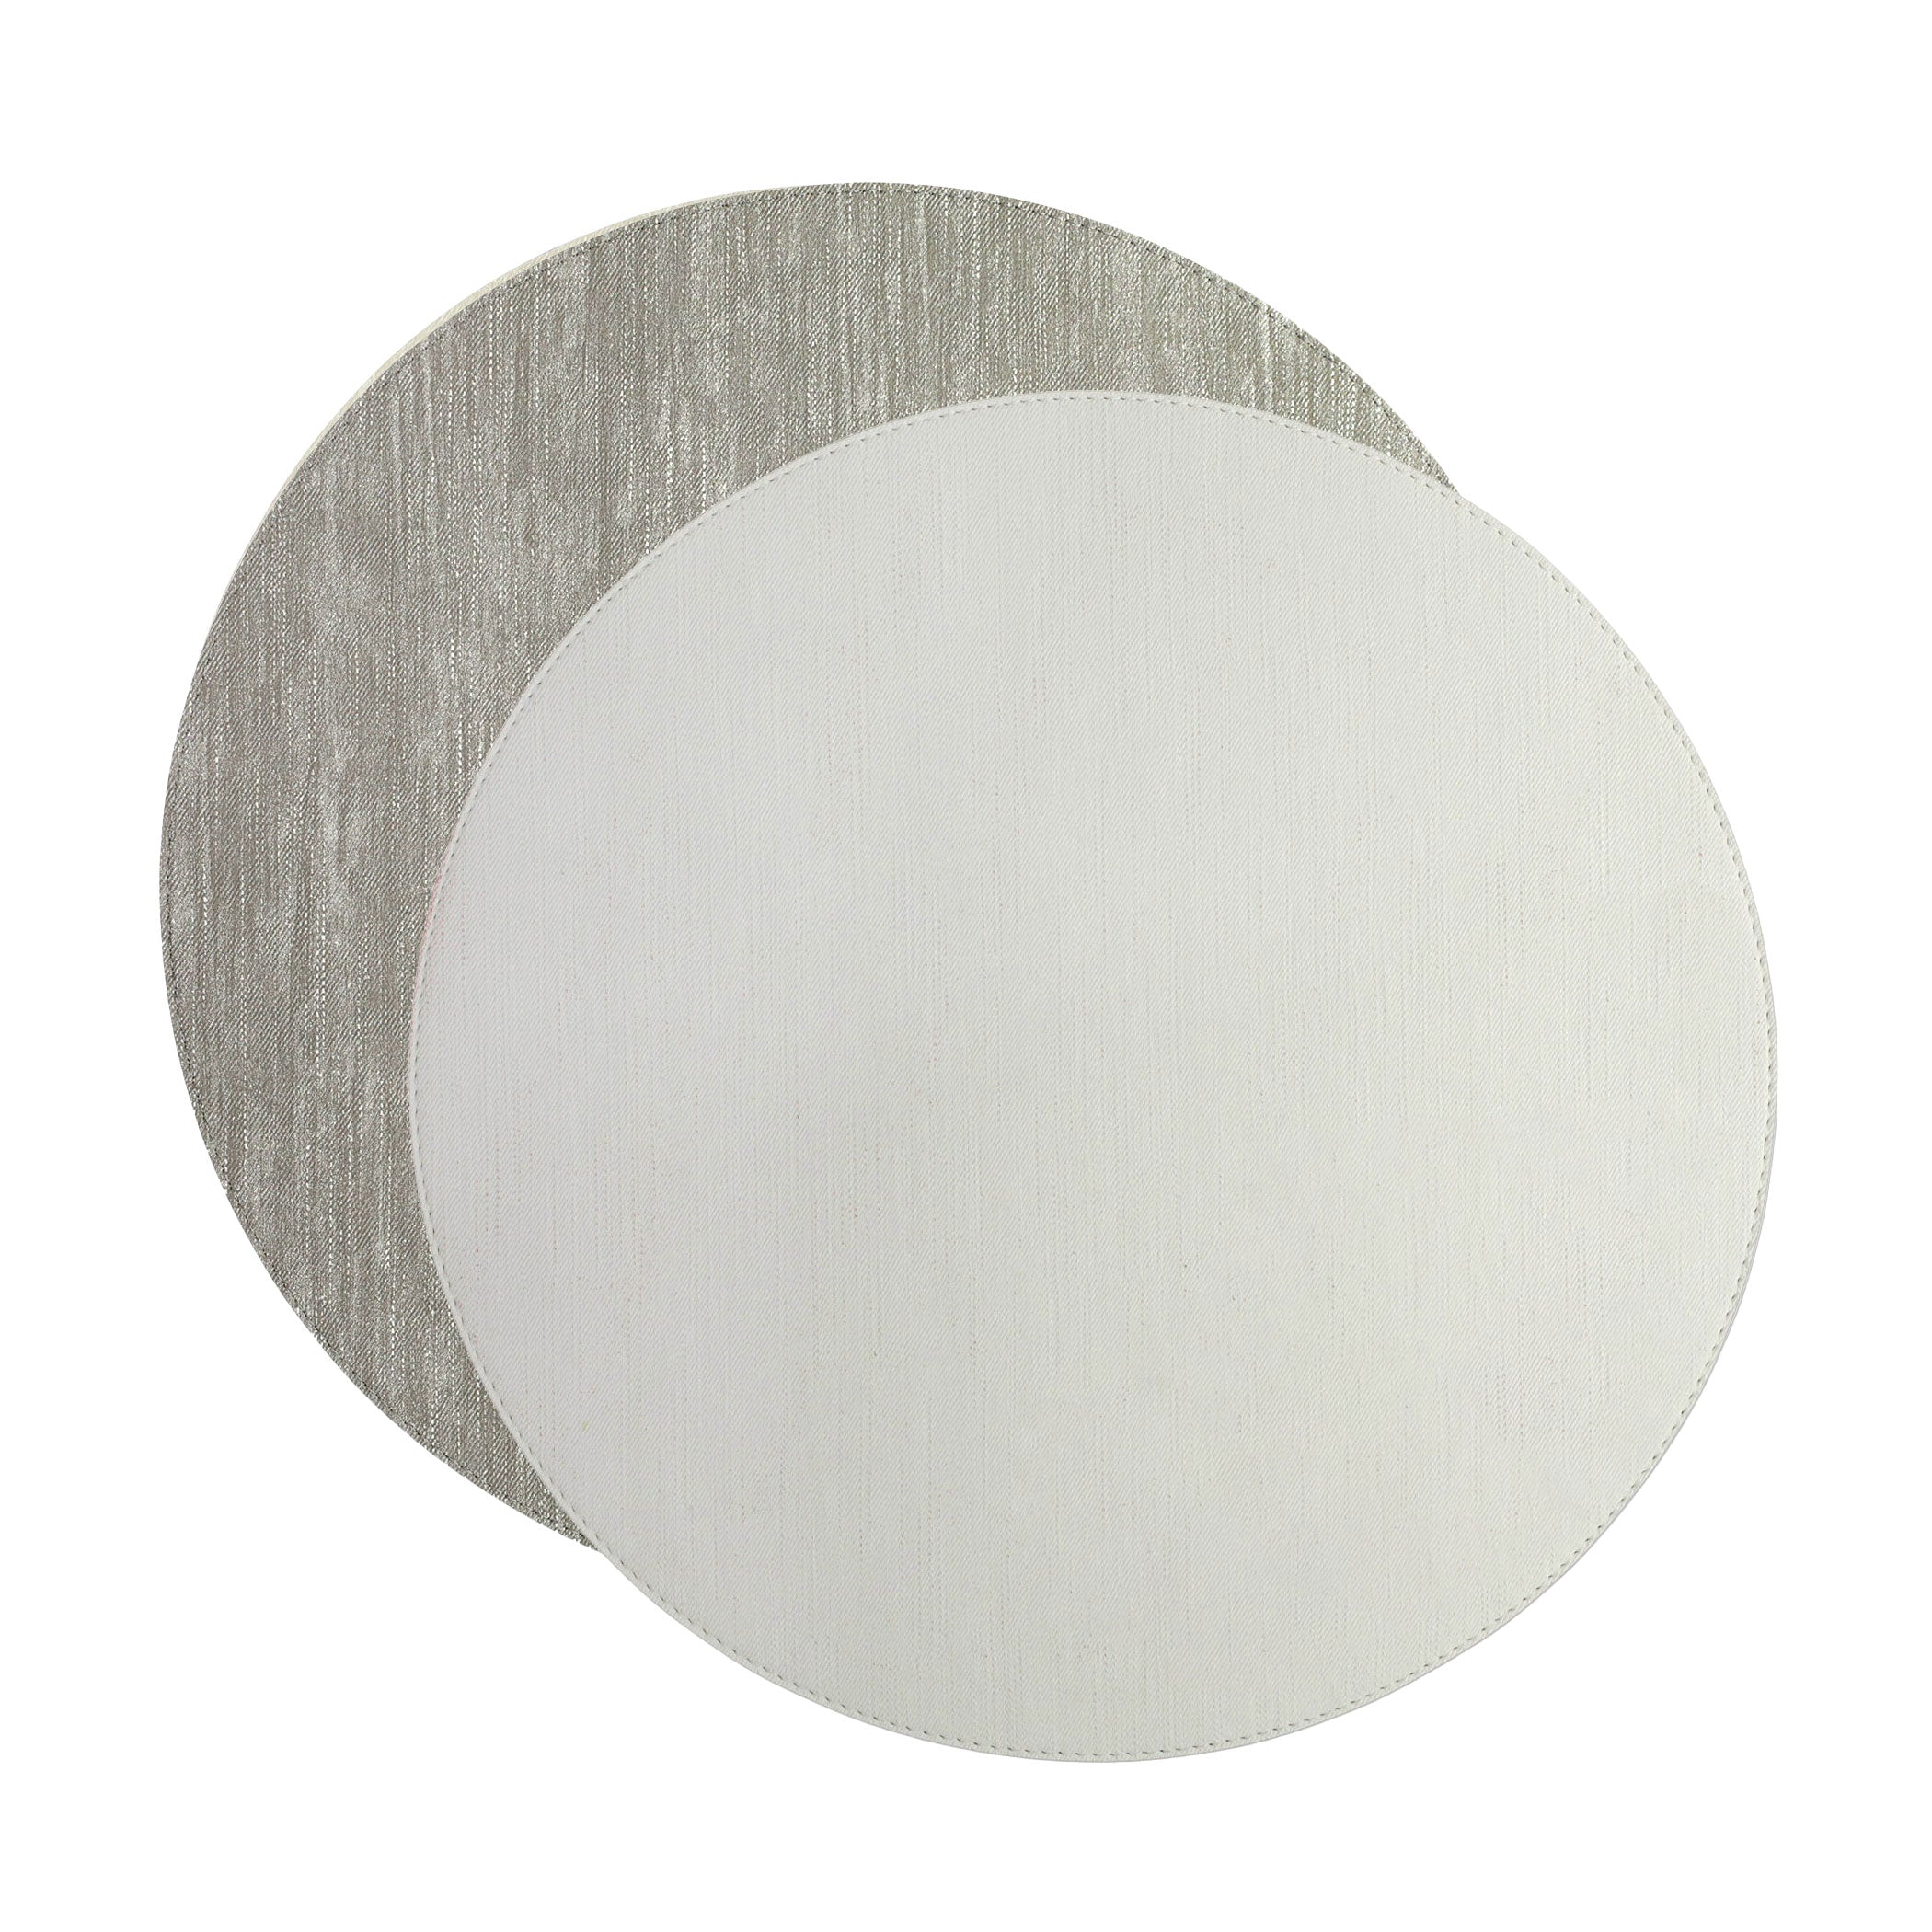 Reversible Placemats Gray/White Round Placemat